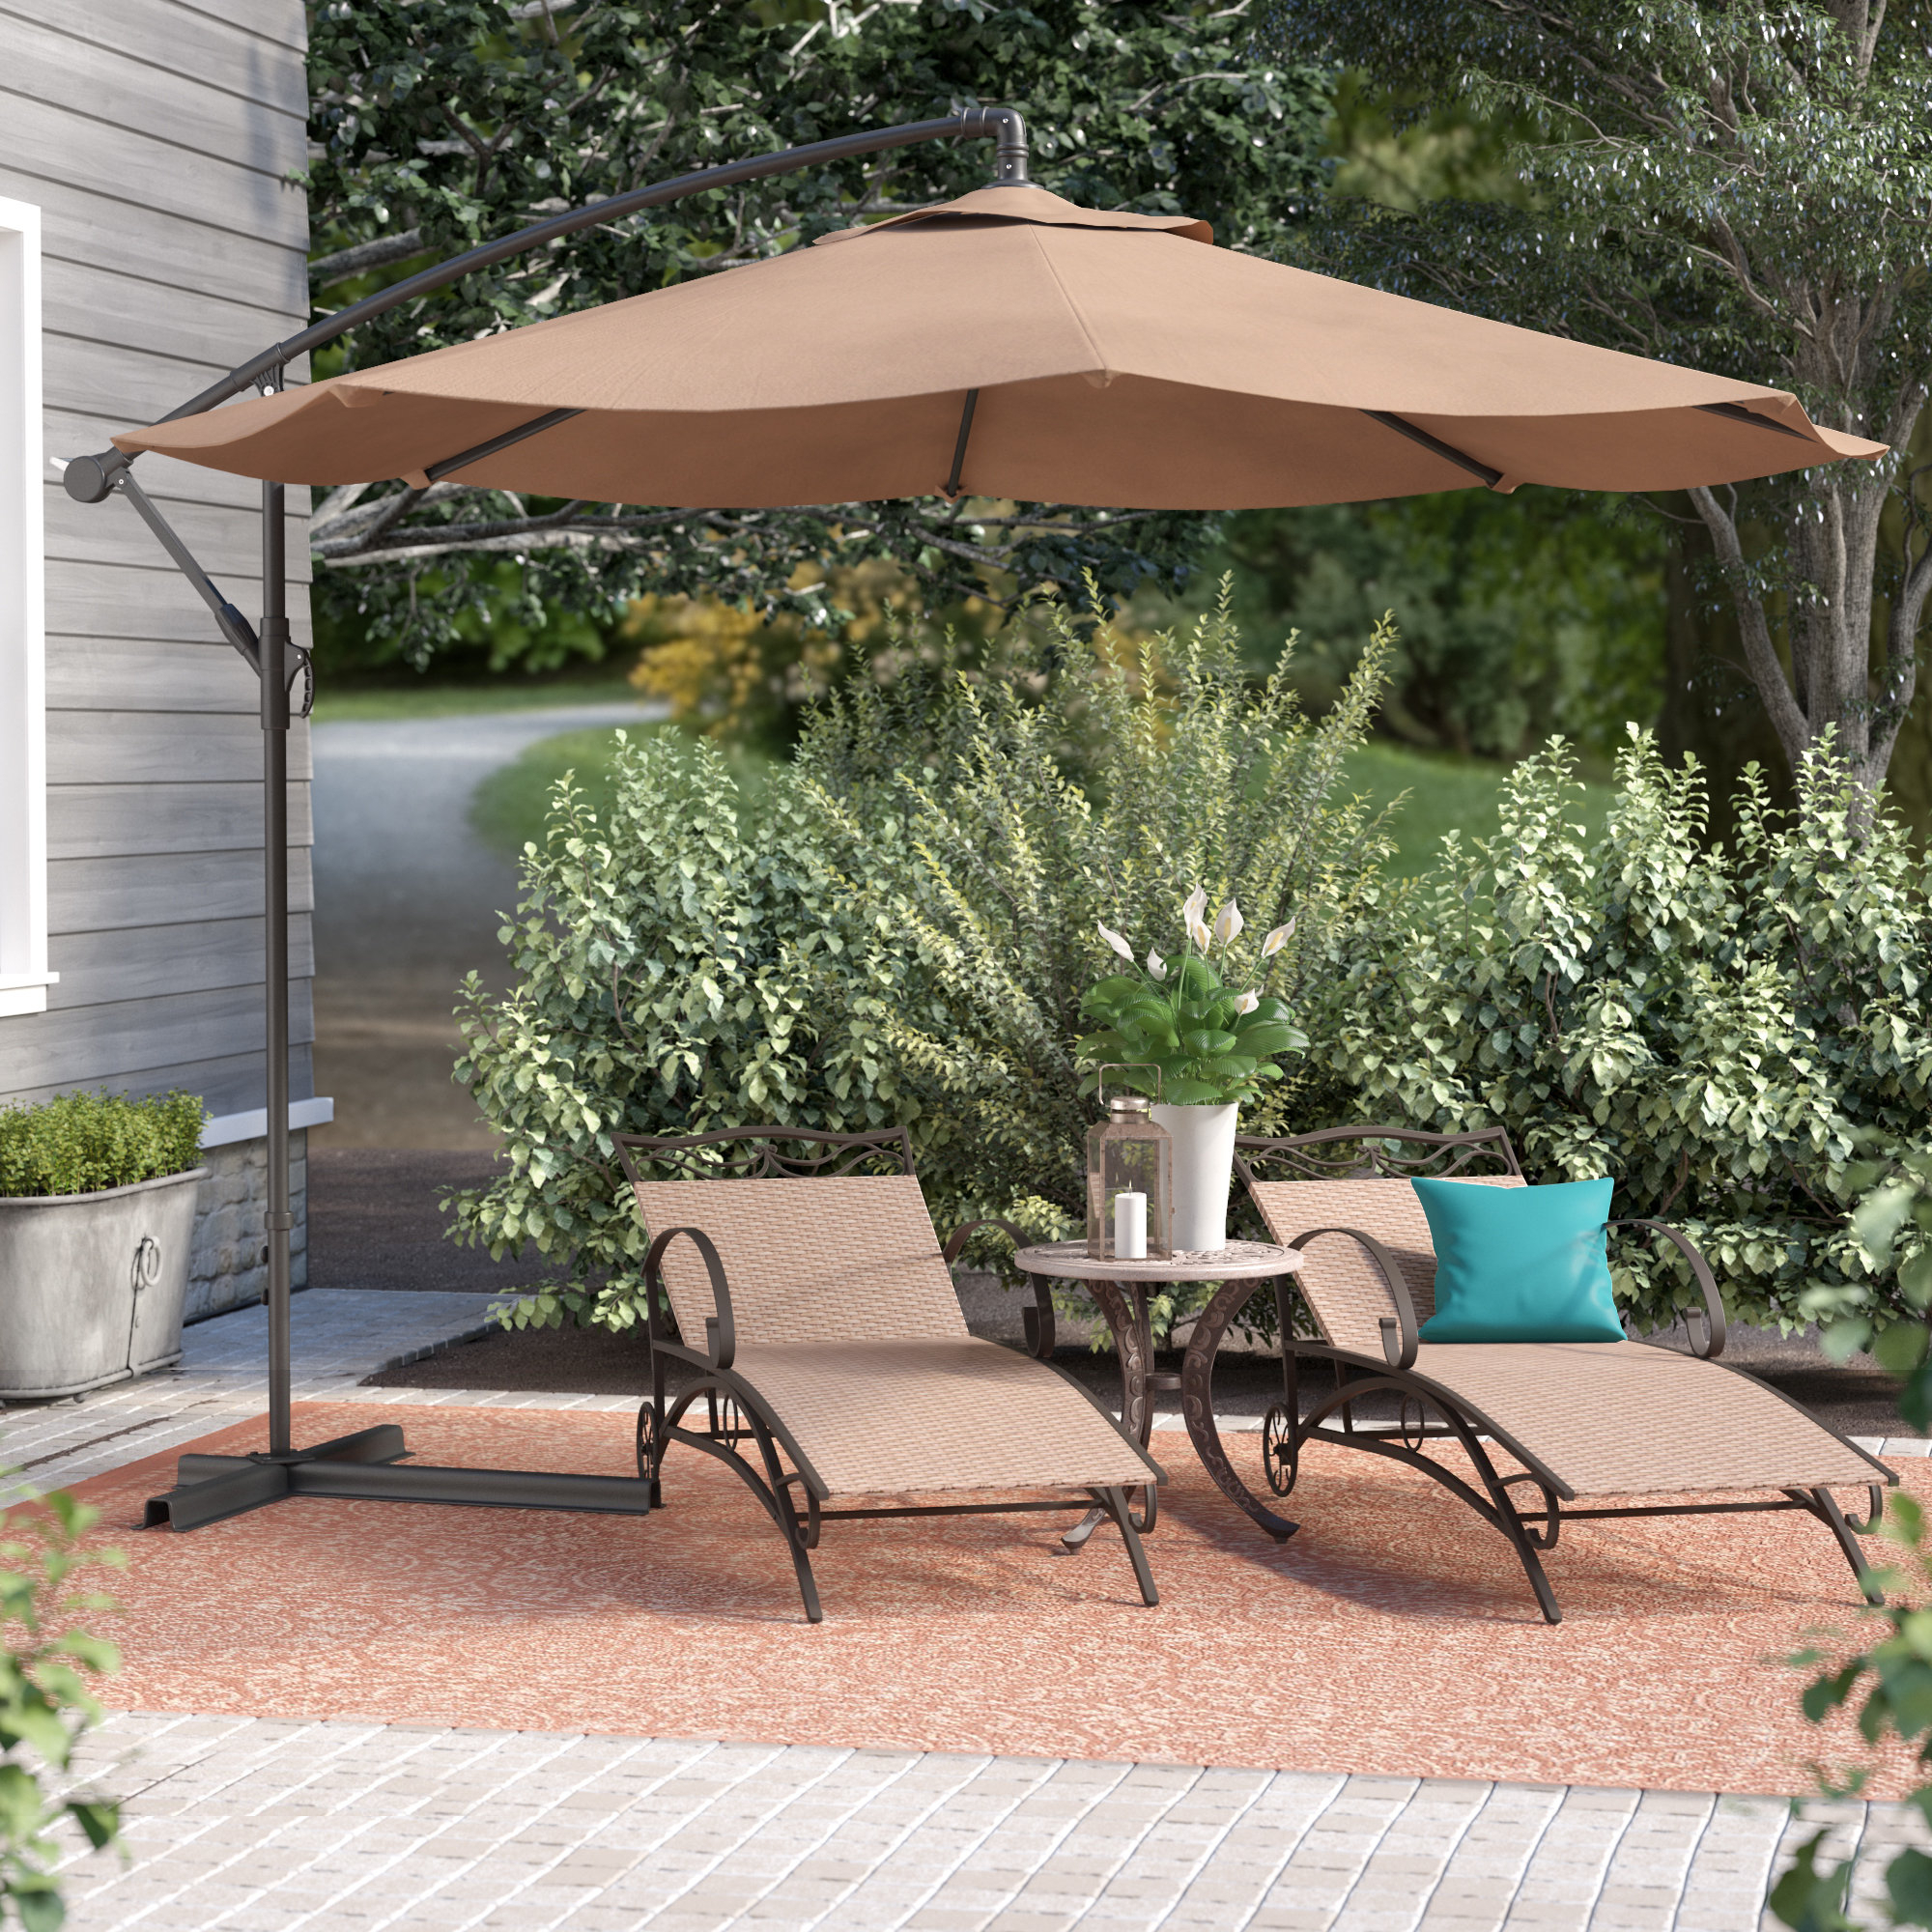 Bormann 10' Cantilever Umbrella Intended For Fashionable Dore Patio Cantilever Umbrellas (View 8 of 20)